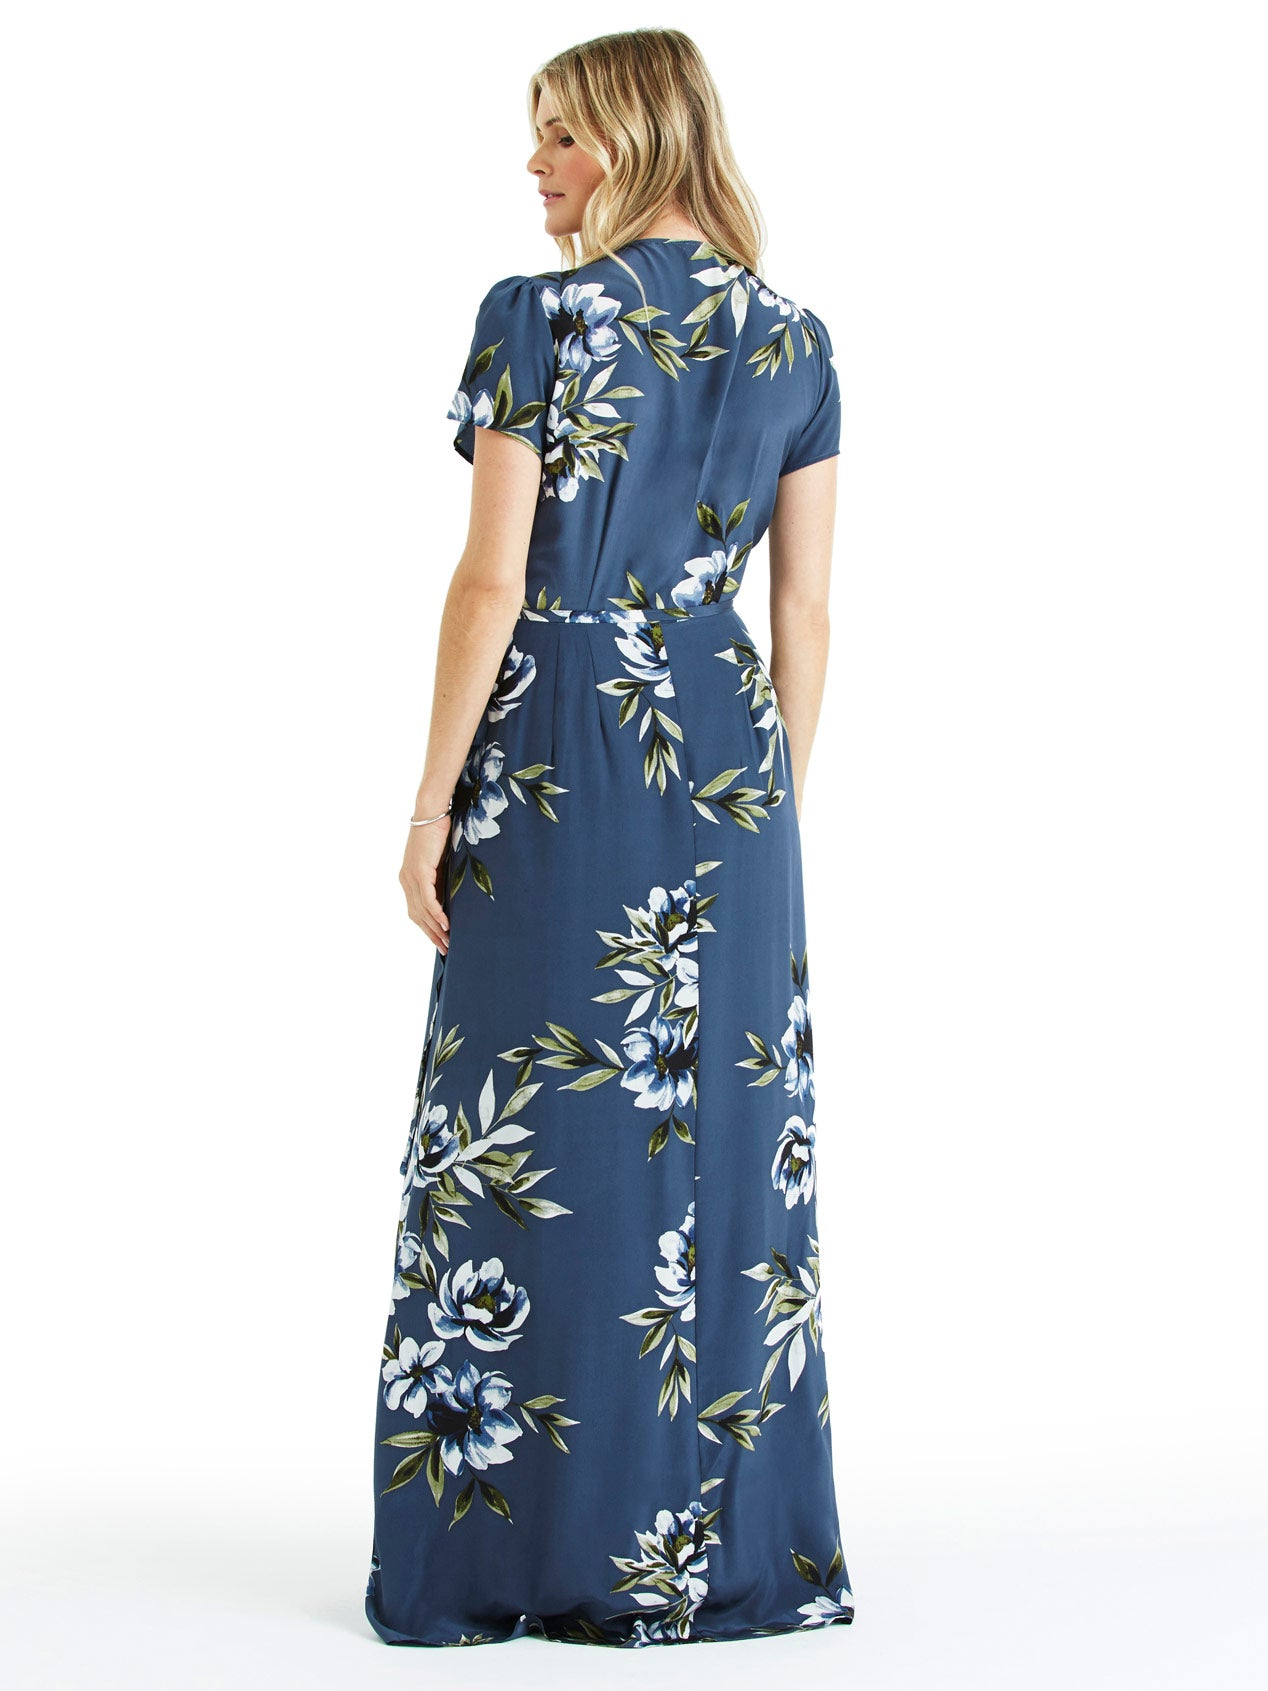 Yumi Kim Maternity Silk Maxi Dress - Blue Floral Print | TILDEN